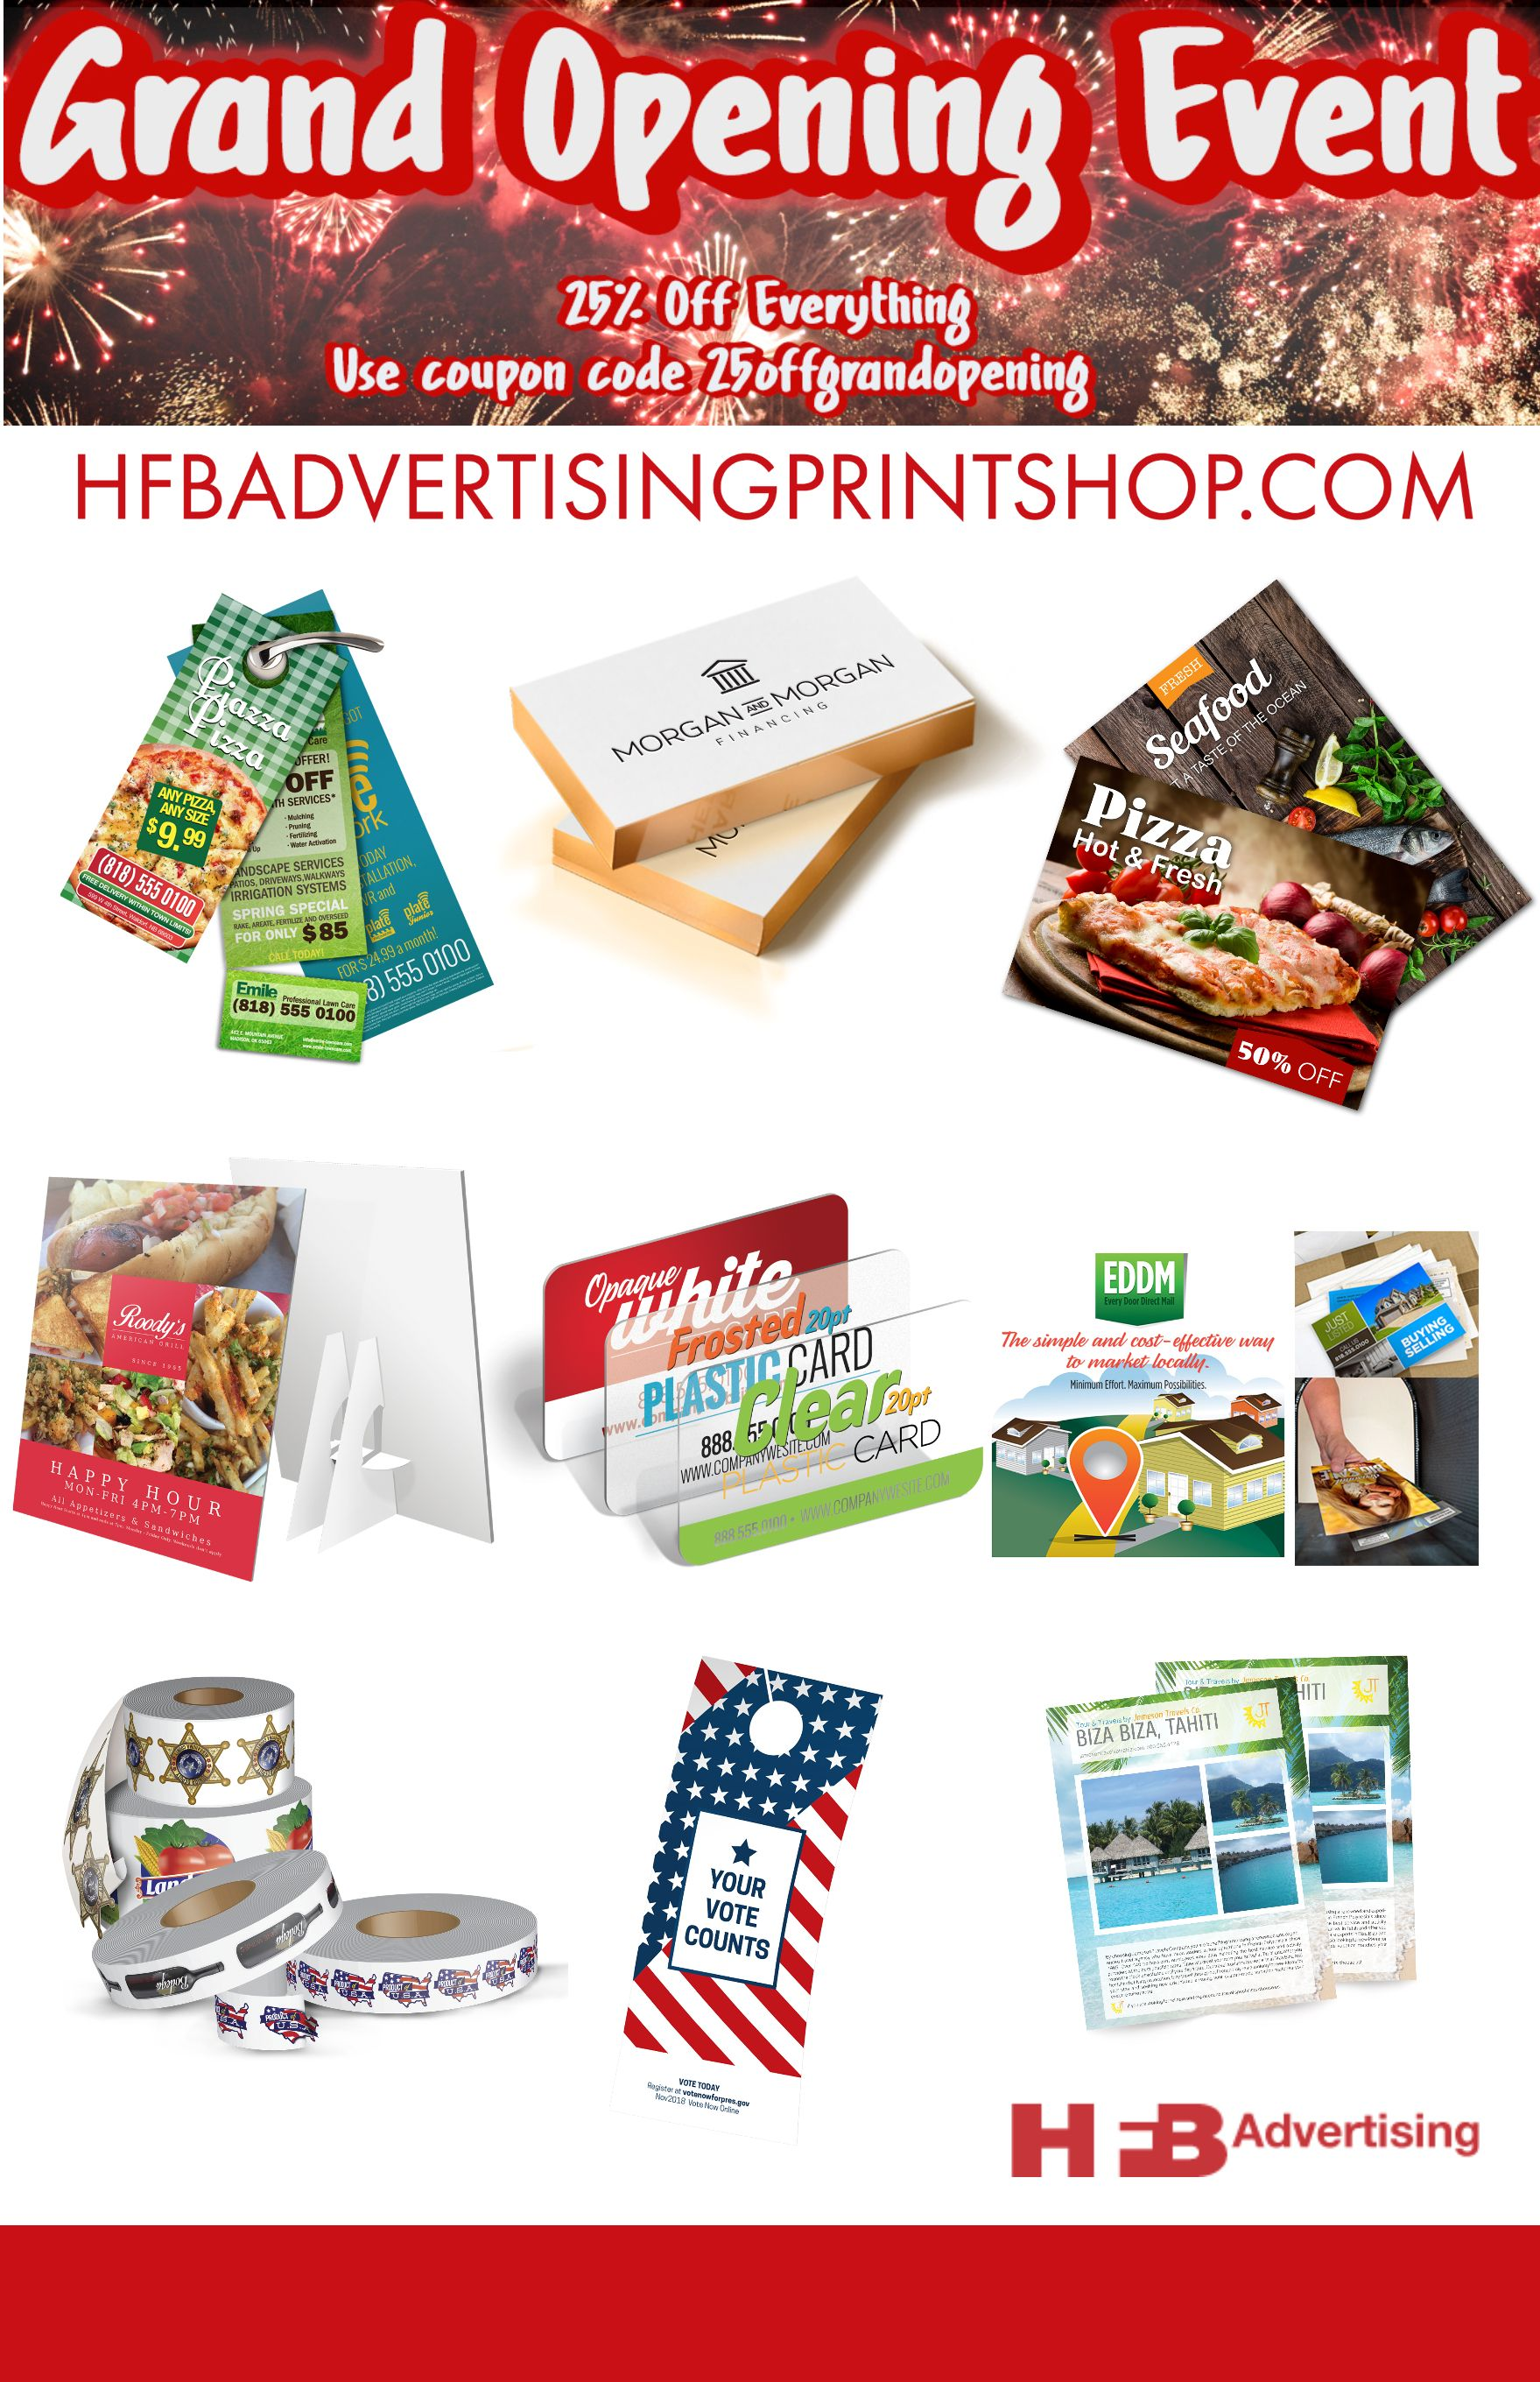 Grand Opening Event Online Print Shop Full Color Offset